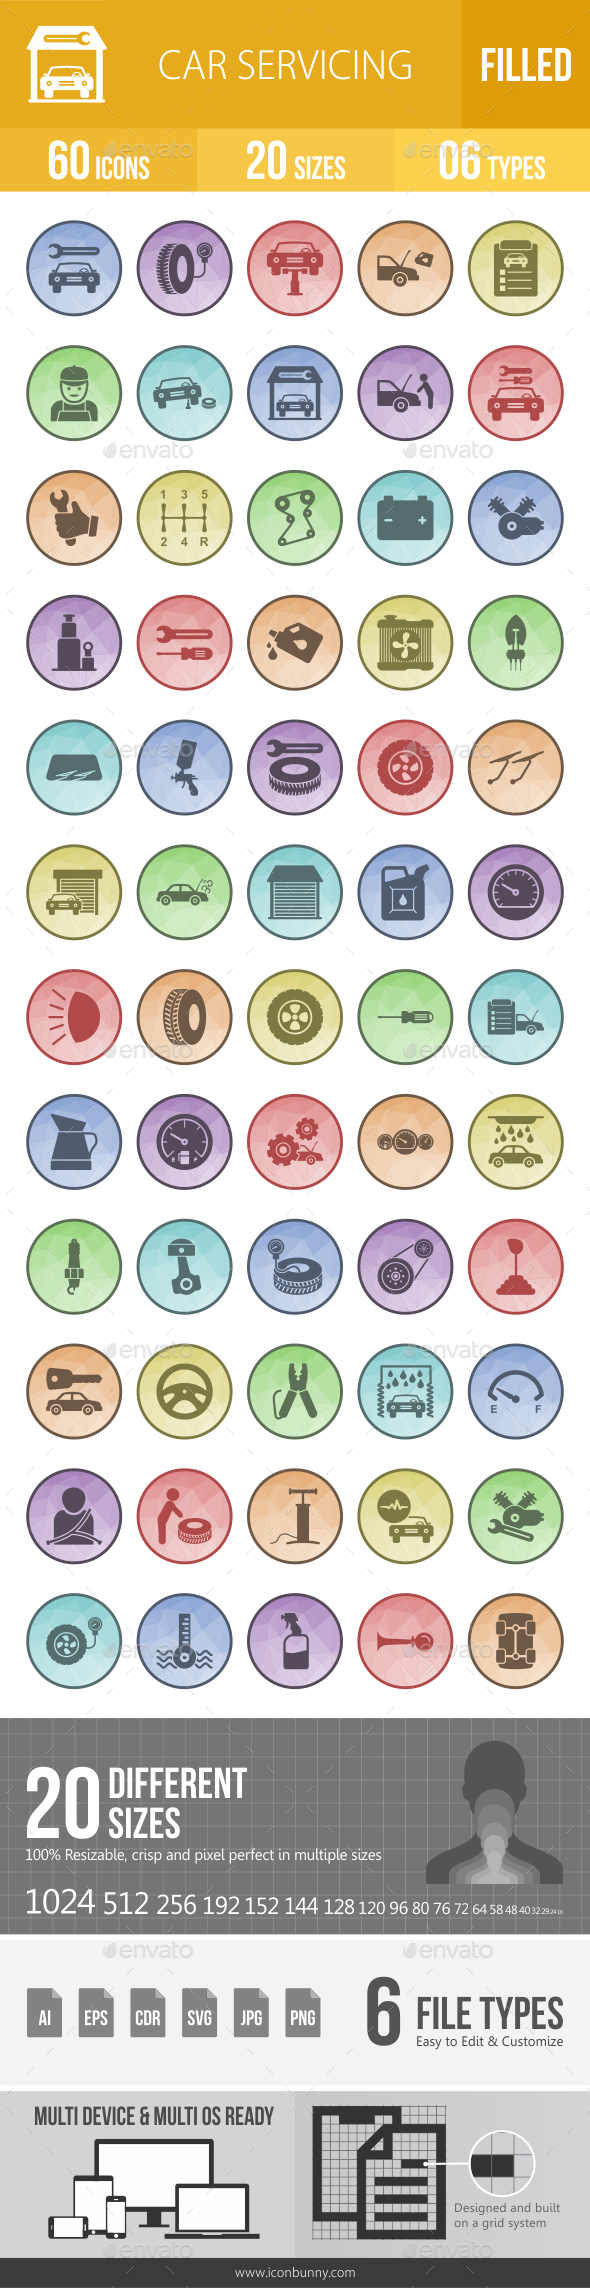 GraphicRiver 60 Car Servicing Filled Low Poly Icons 21157281